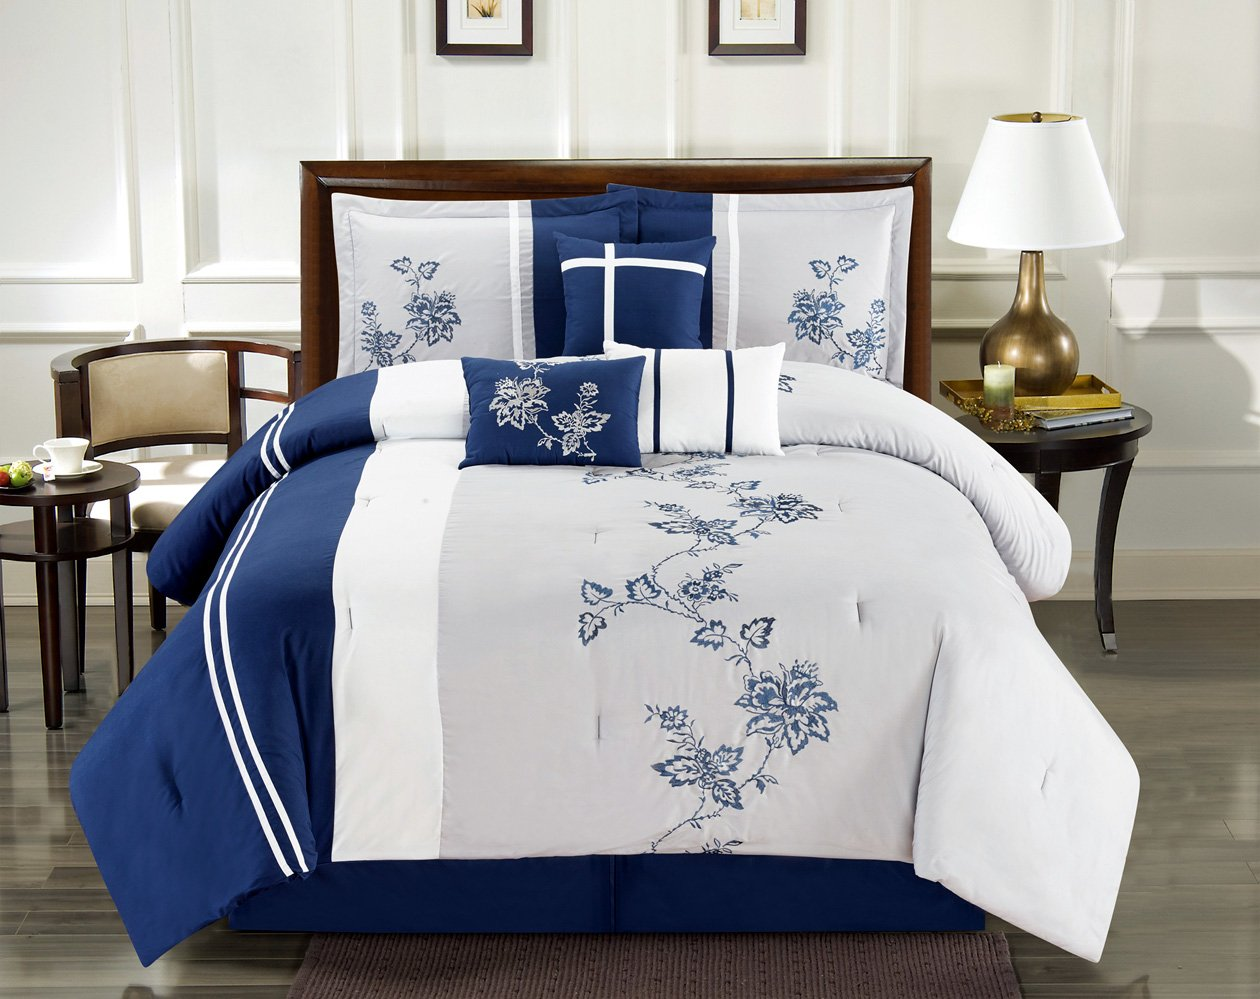 Blue and white bedding - Modern 7 Piece King Bedding Navy Blue Grey White Striped And Floral Embroidered Comforter